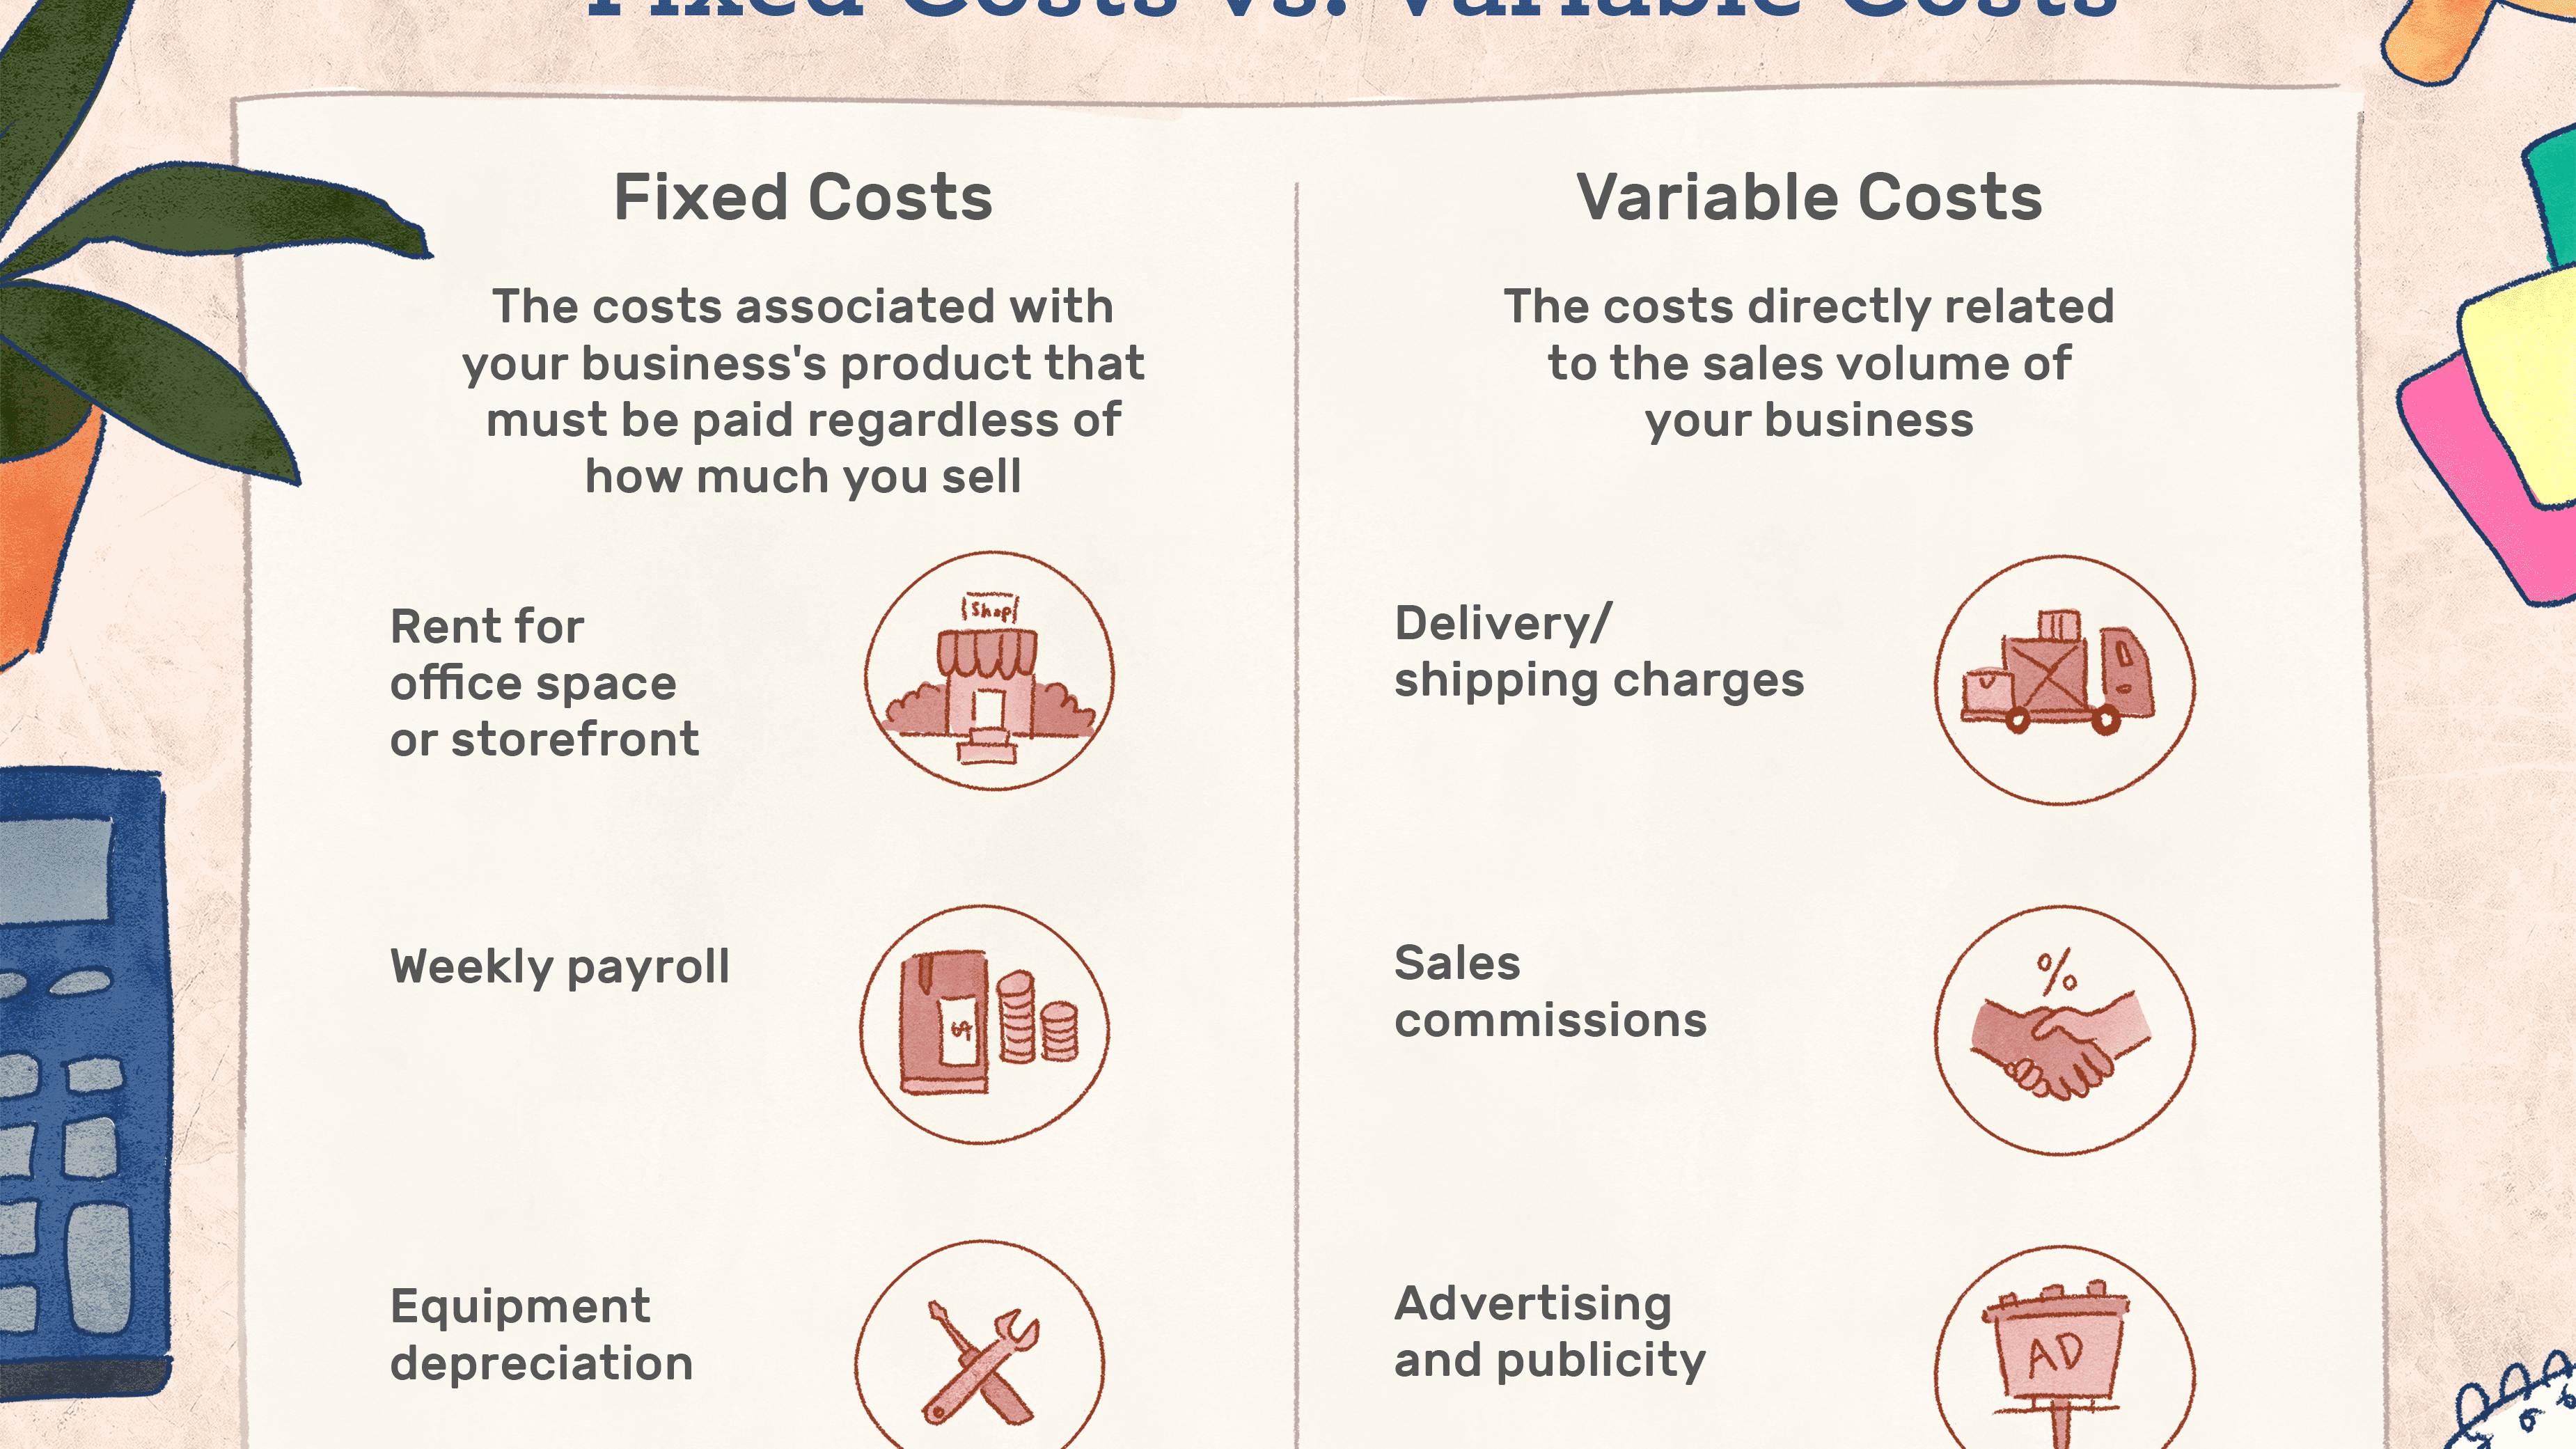 Fixed and Variable Costs When Operating a Business